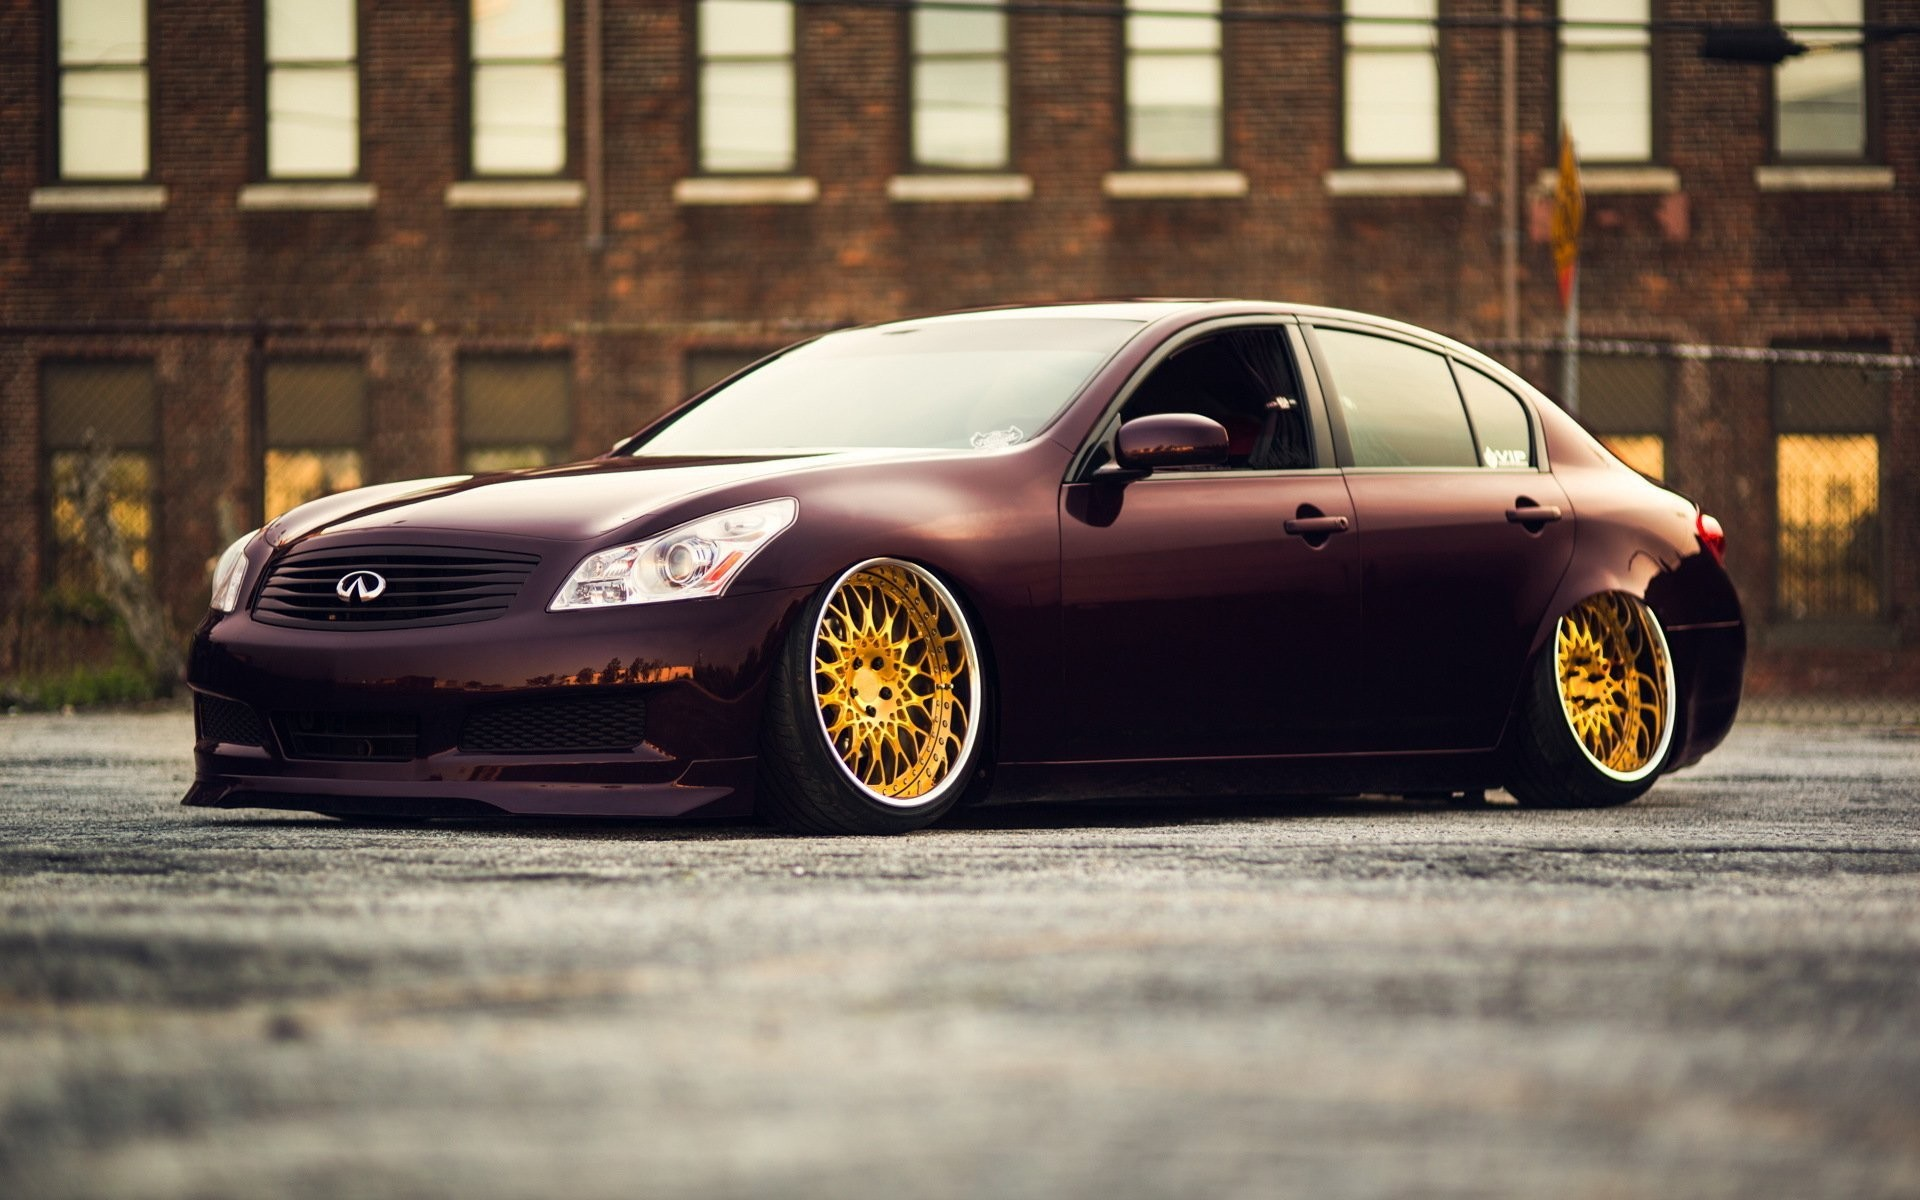 1920x1281 Infiniti Sedan Wallpaper Photo Gallery